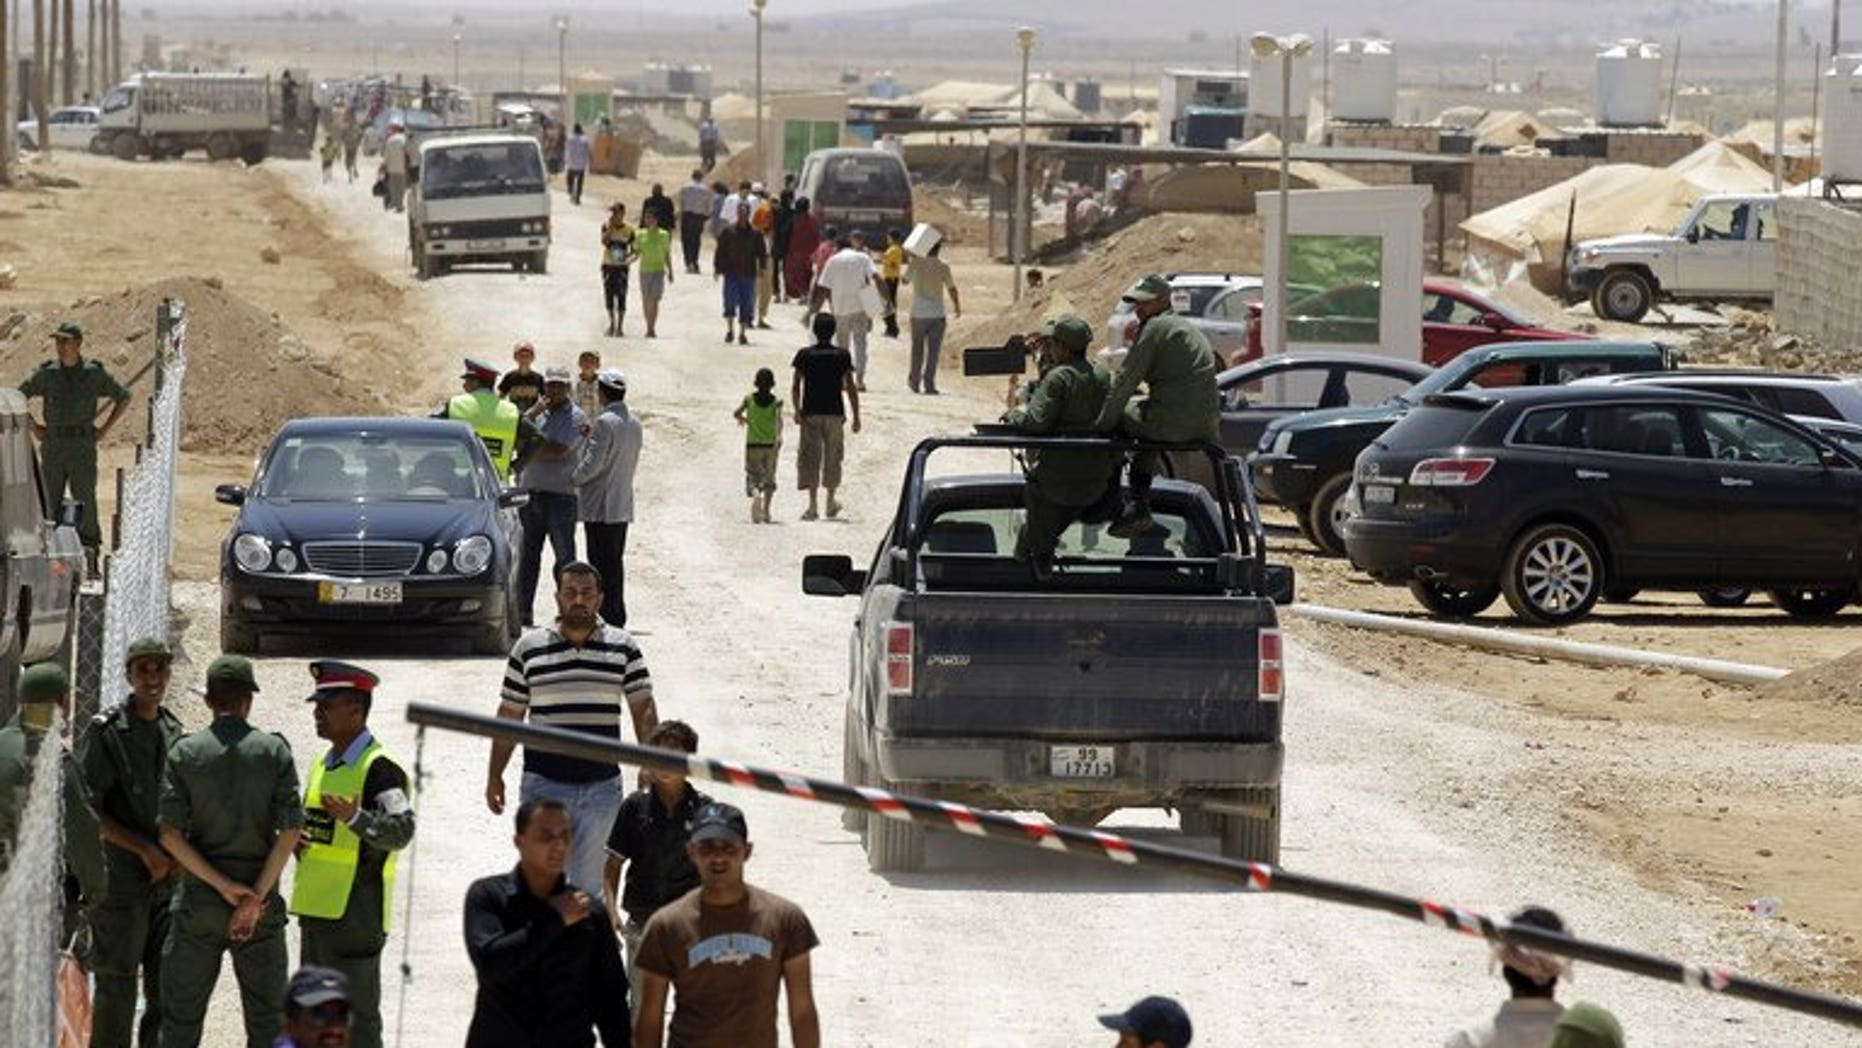 Jordanian security guards patrol the entrance to Zaatari refugee camp, near the border with Syria, on August 15, 2012.